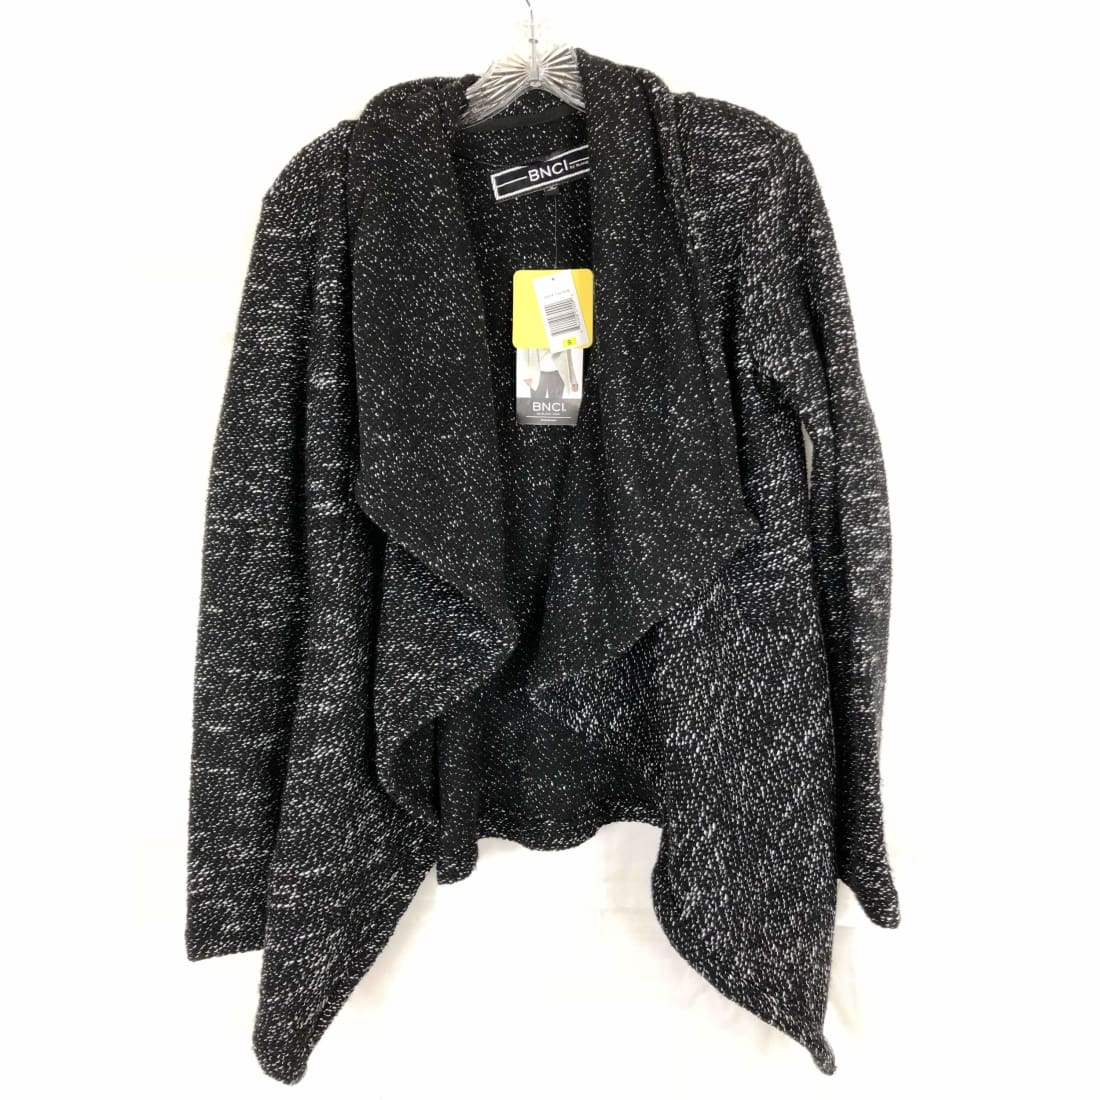 Bnci By Blanc Noir Womens Tweed Drape Front Shawl Collar Cardigan Sweater S / Black Sweaters